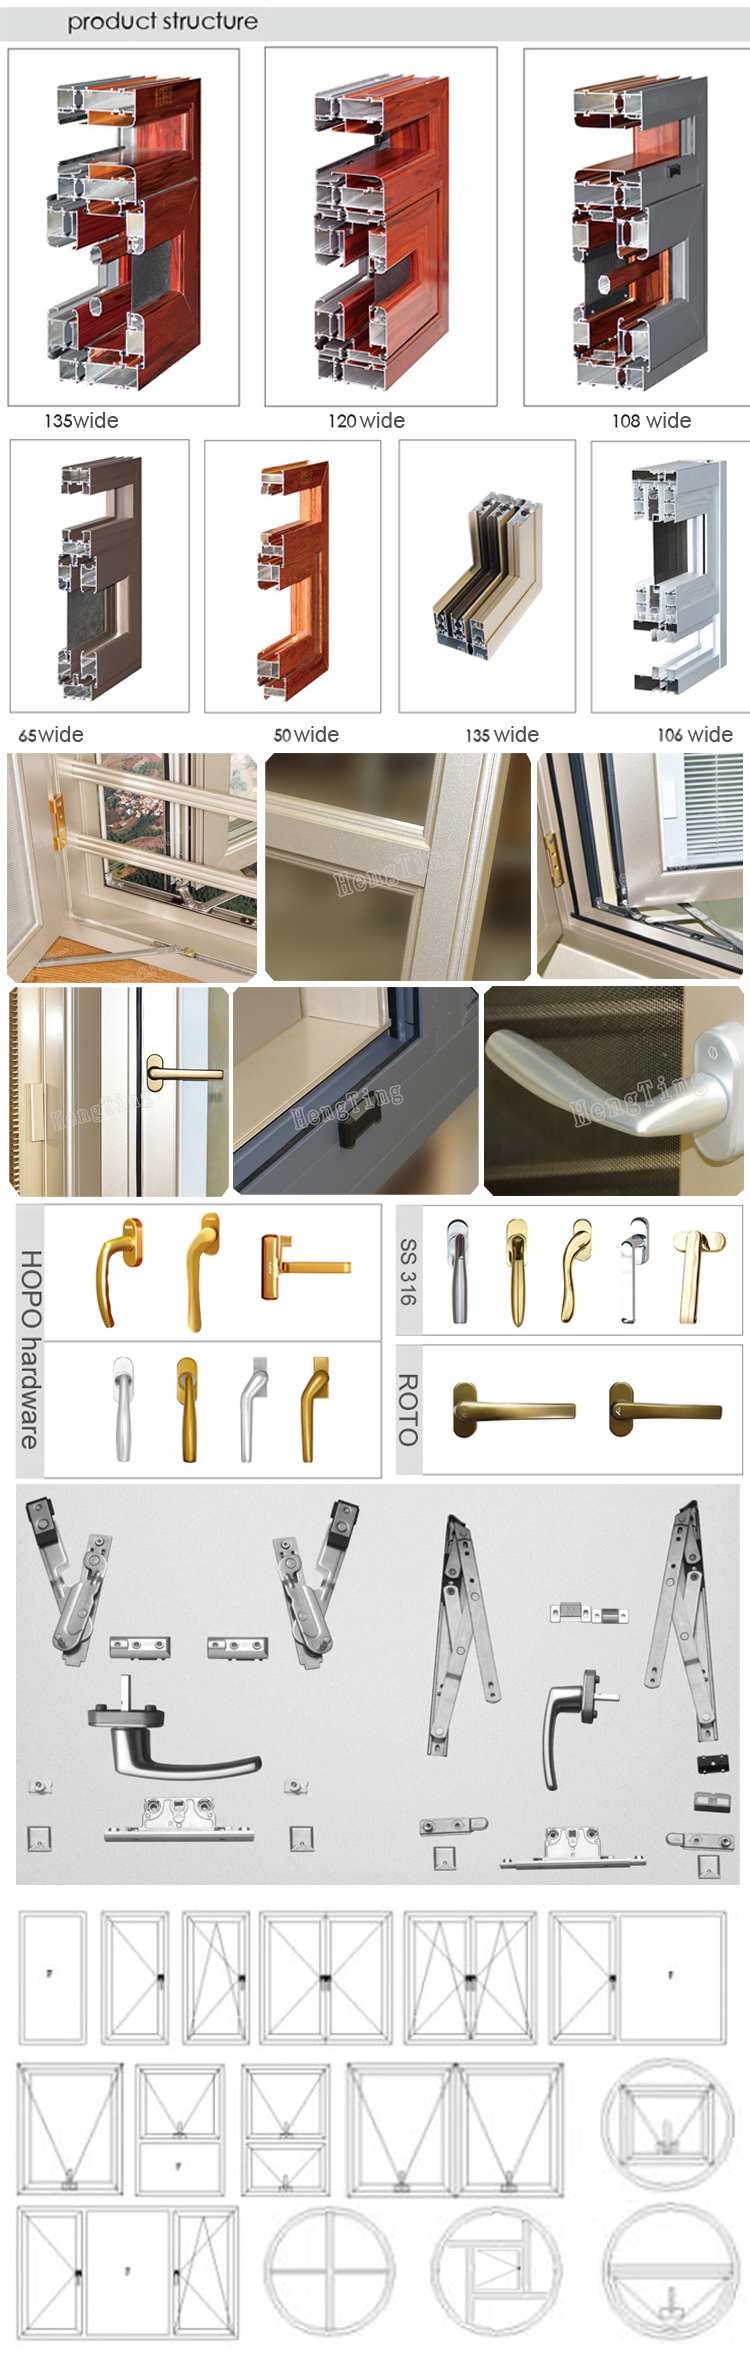 double swing profile casement window for sale.jpg